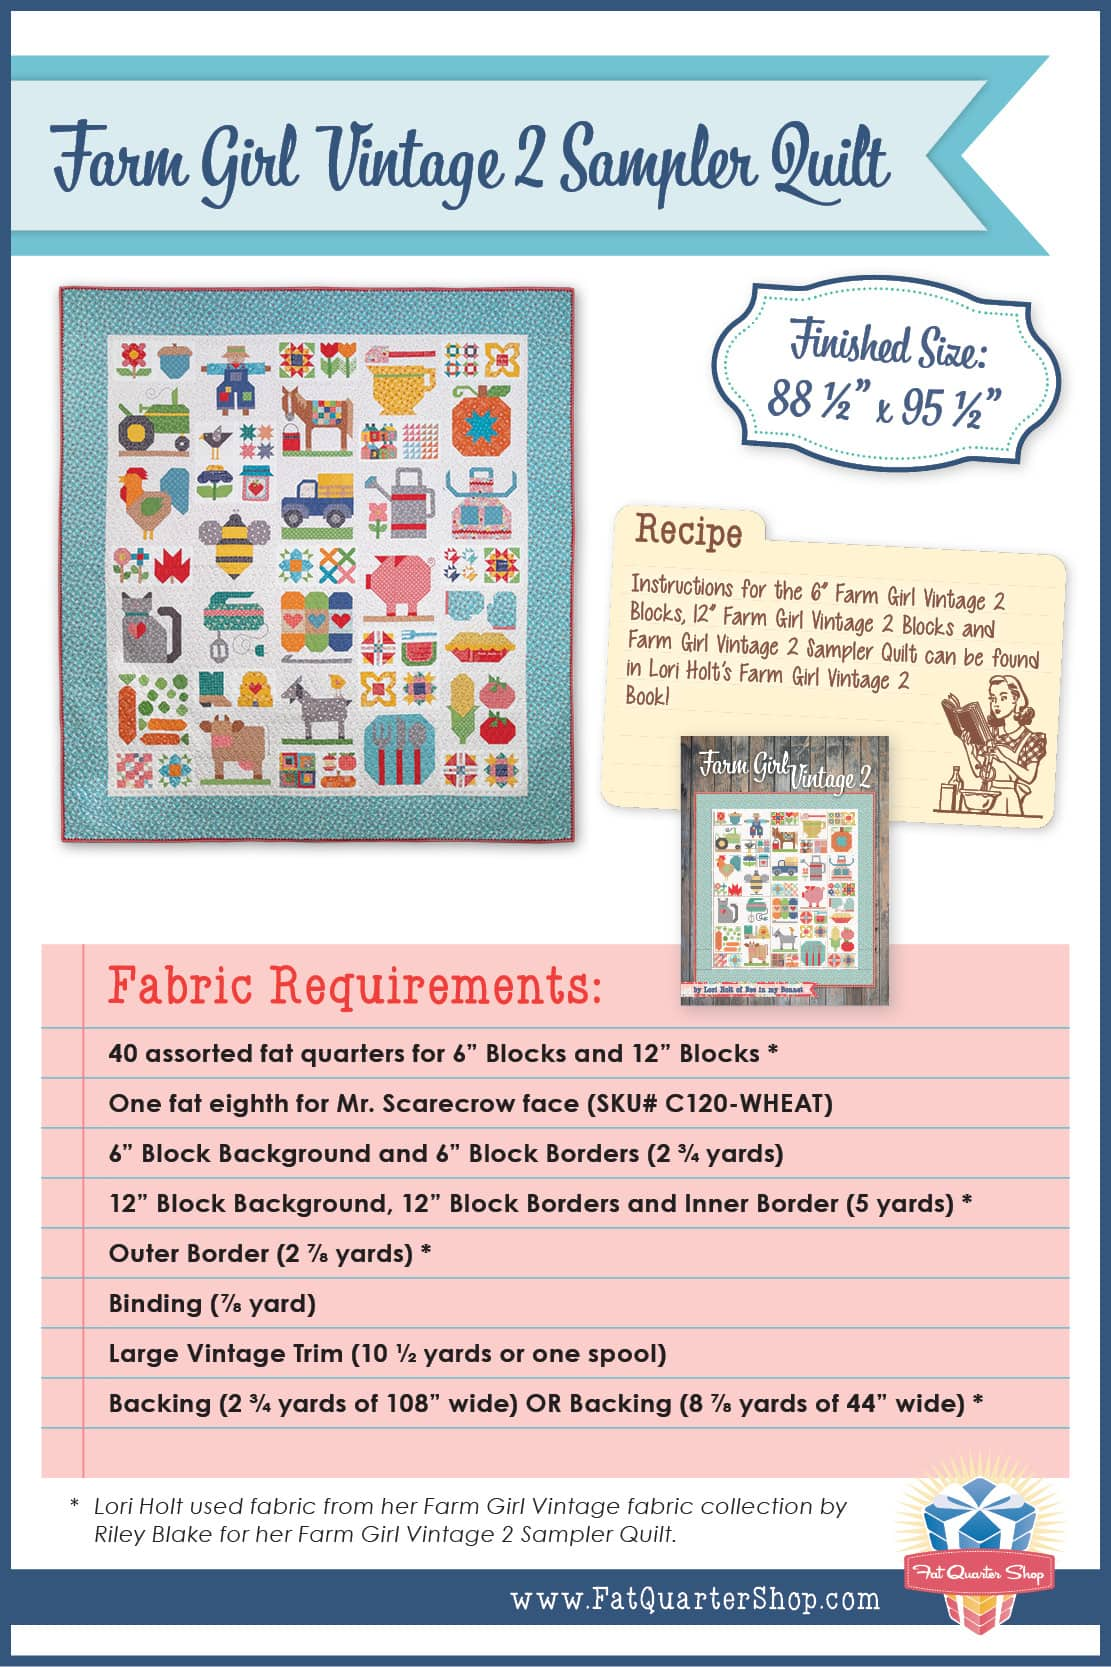 Farm Girl Vintage Sampler Quilt Fabric Requirements